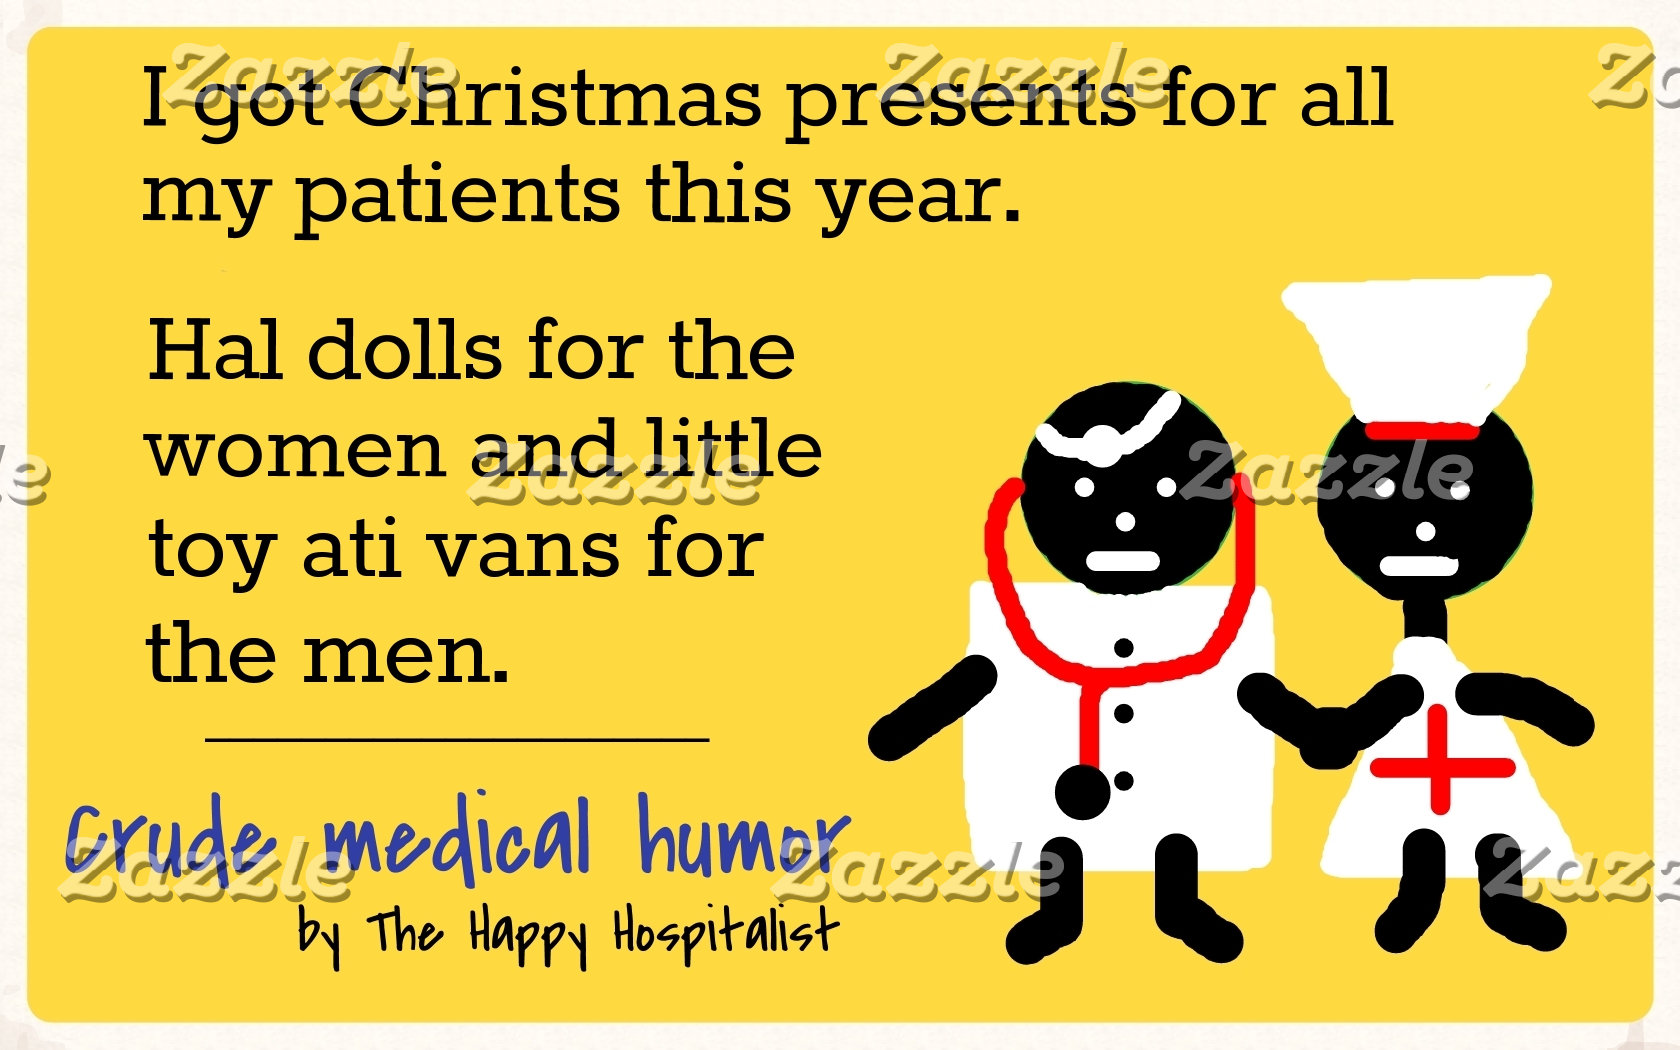 I got Christmas presents for all my patients...